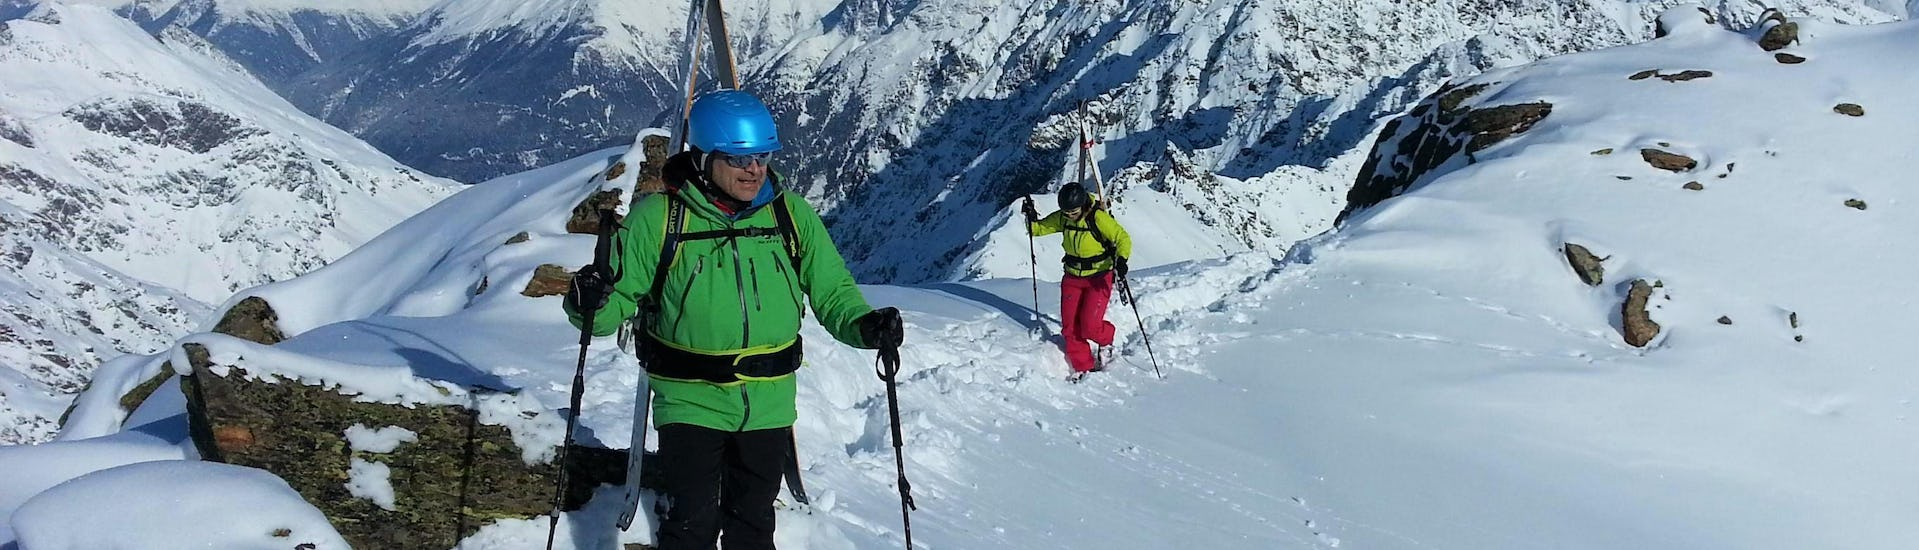 A private ski touring guide from the ski school Ski- und Snowboardschule SNOWLINES Sölden is showing the magnificent view of the snowy peaks of the ski resort of Sölden to a participant of the Private Ski Touring Guide.